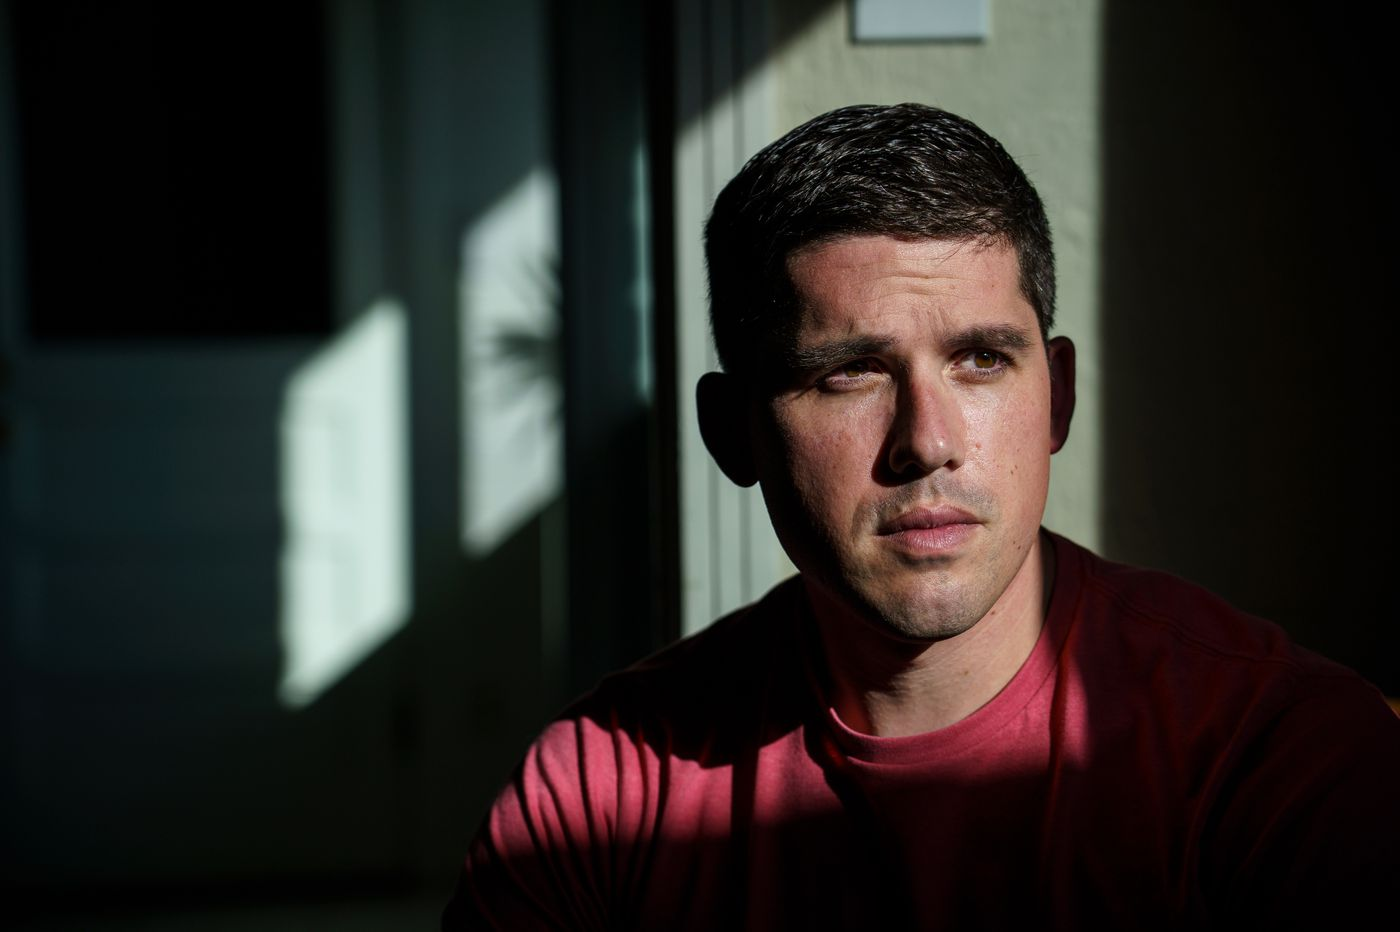 'Ripe for abuse': How Catholic sex scandal convinced one seminarian to go public